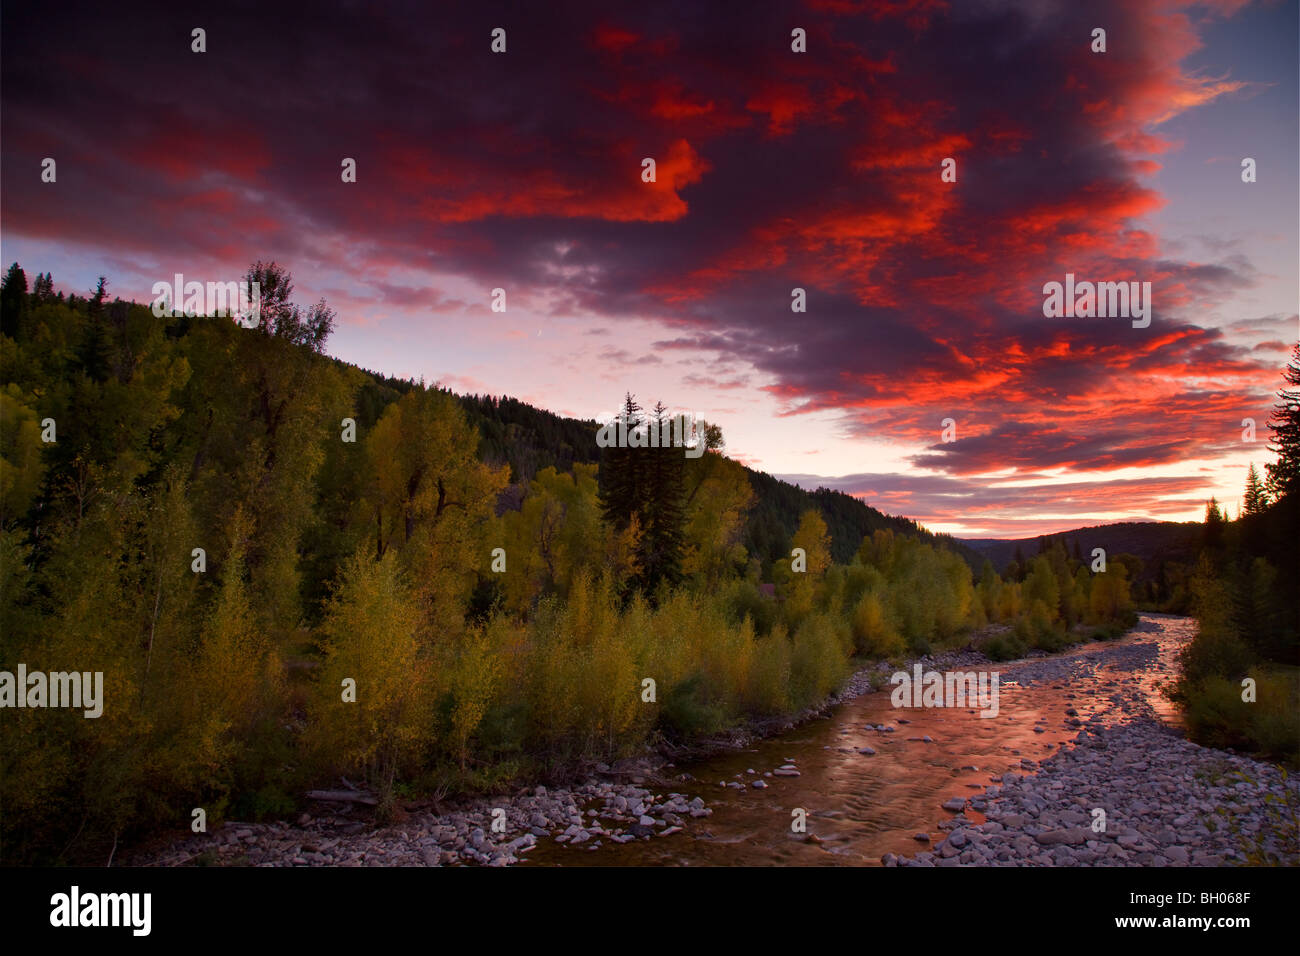 Anthracite Creek with Fall colors at sunset along Kebler Pass Road, Colorado. - Stock Image